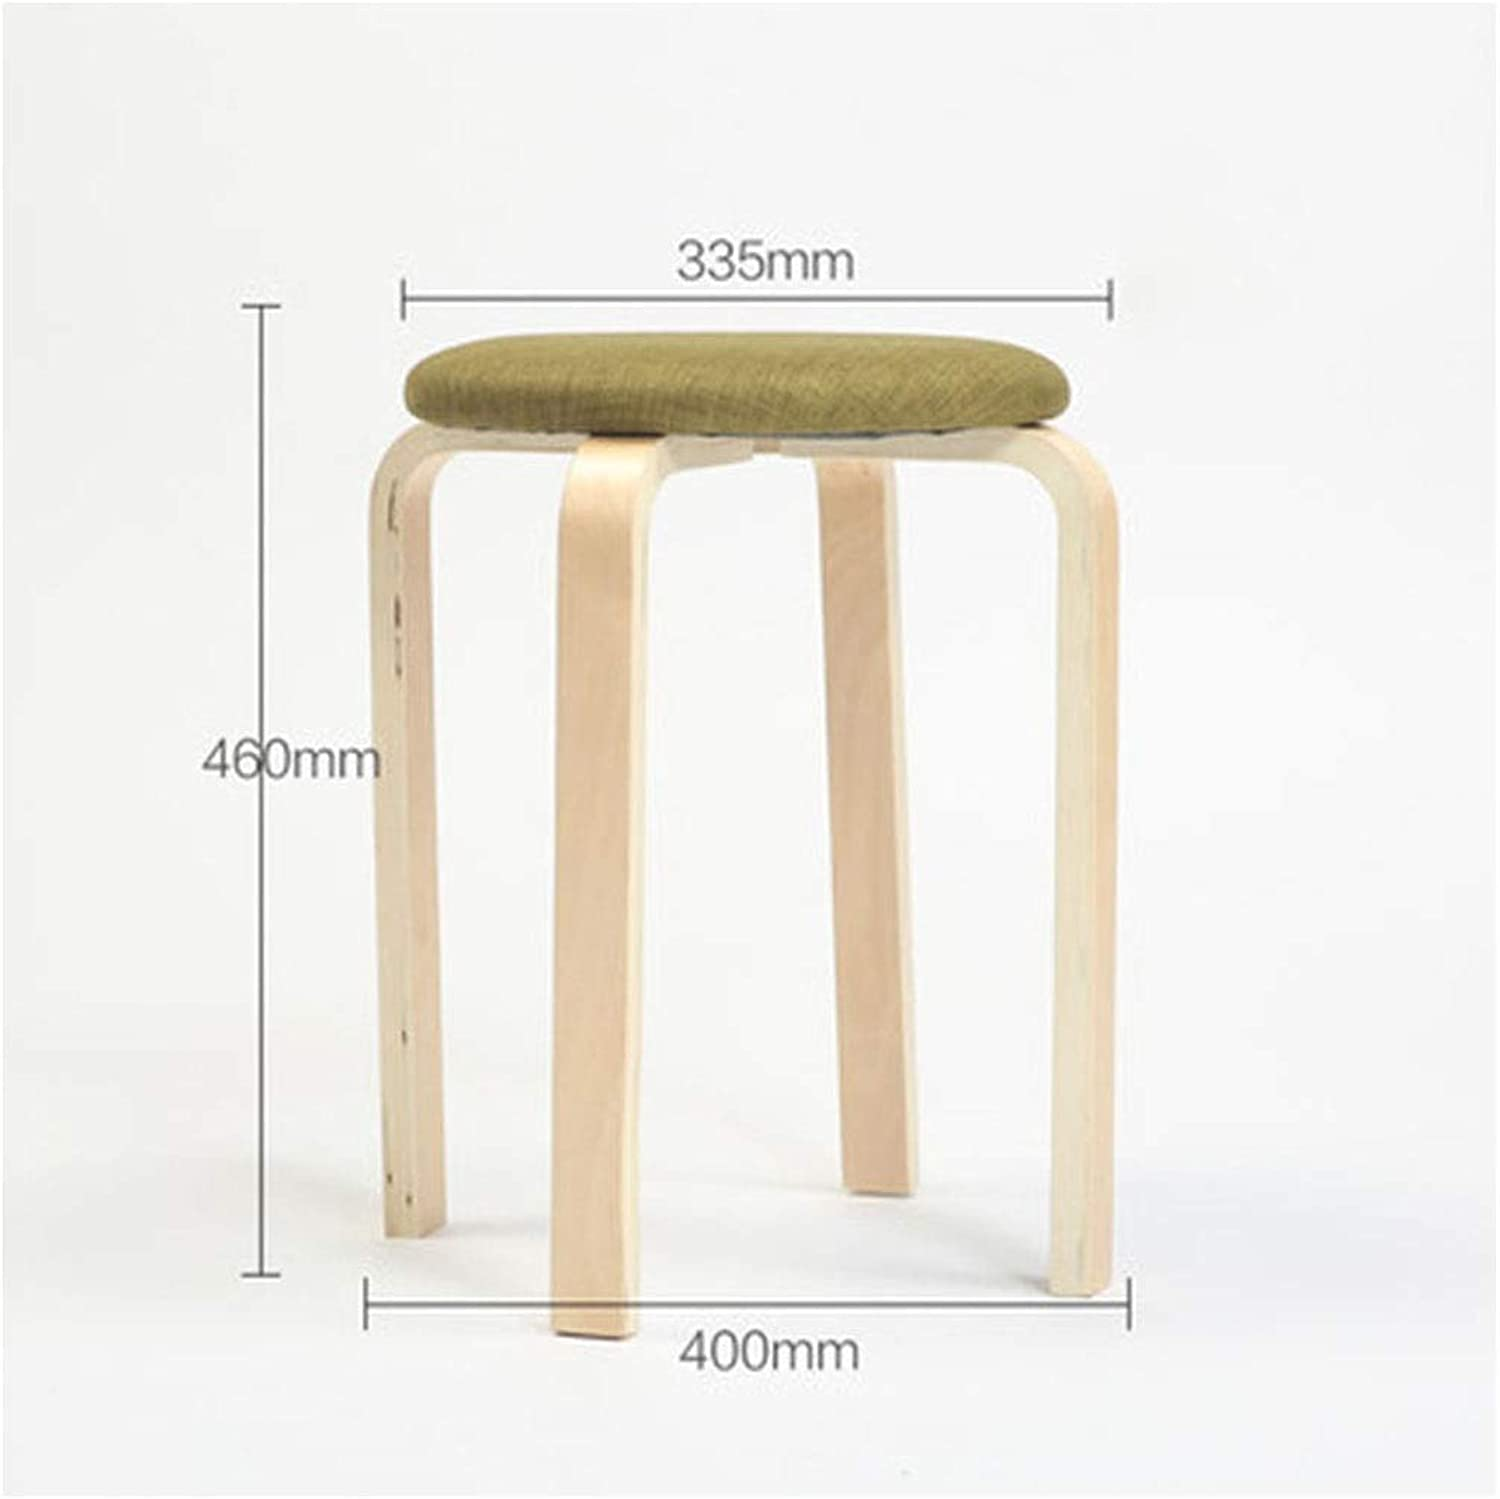 Stools- Wooden Bench- Stool Fashion Creative Home Stool Small Bench Wooden Bench Dining Table Stool Living Room Stool HATHOR-23 (color   F)